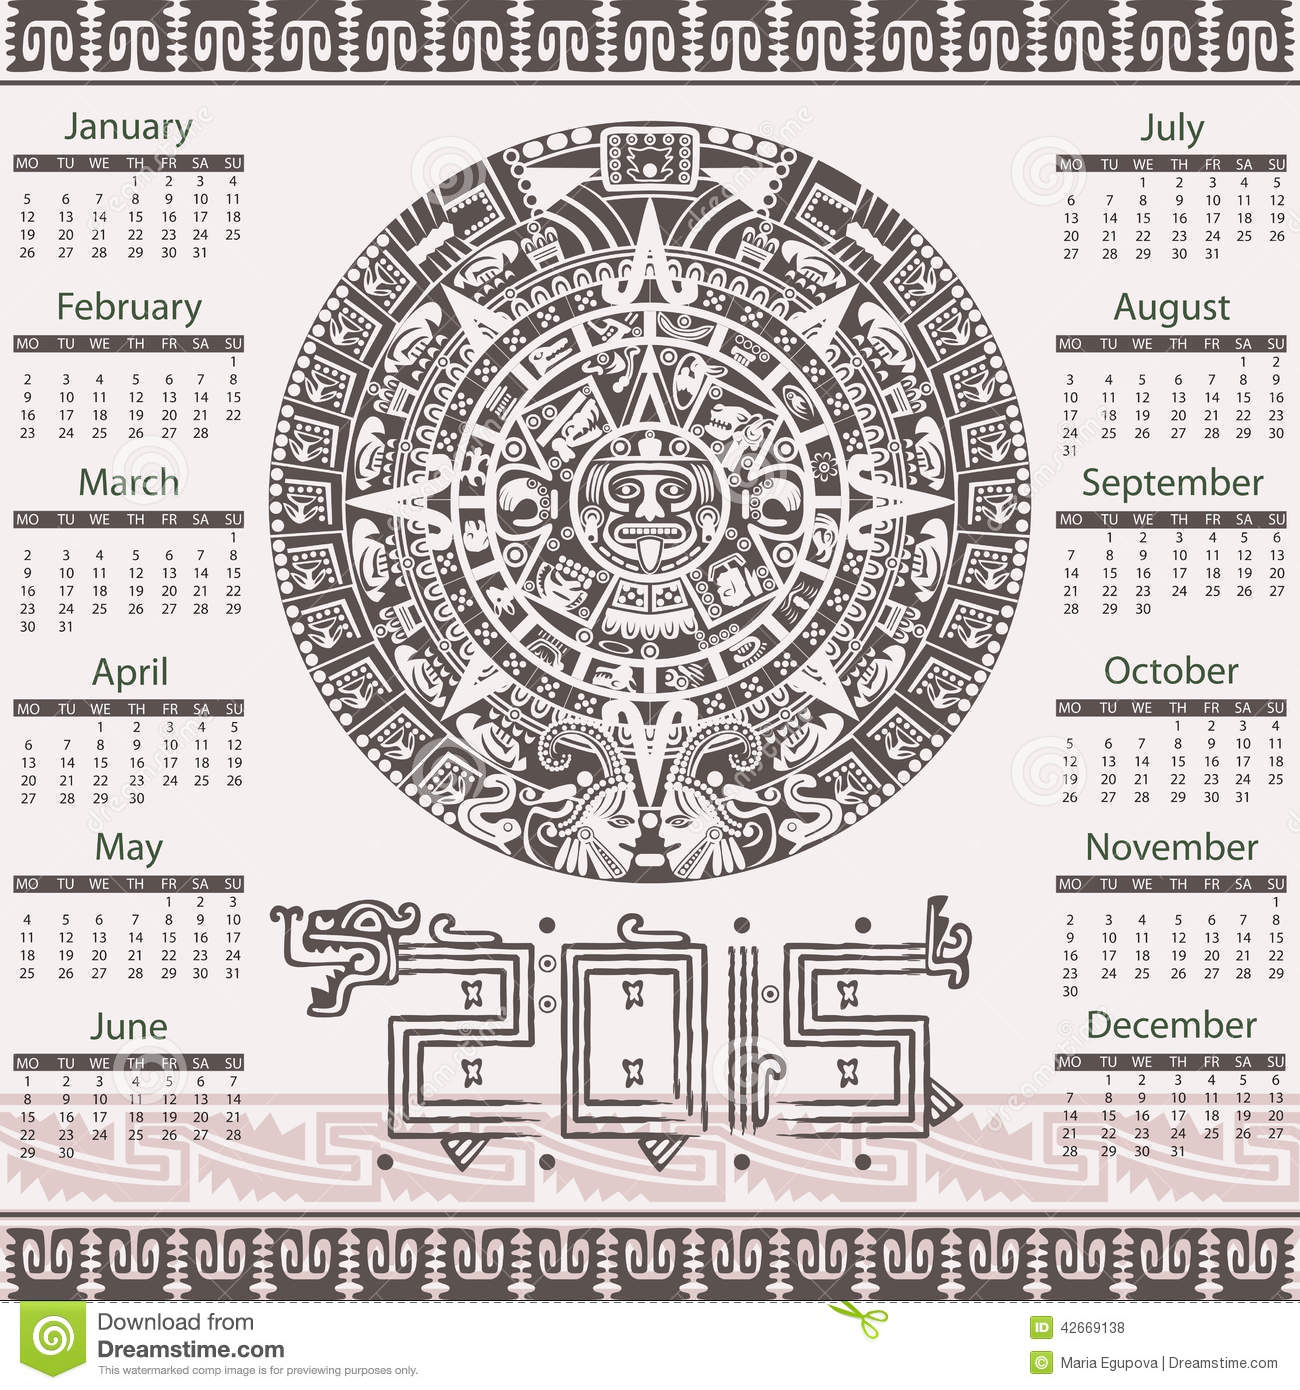 how to draw the aztec calendar